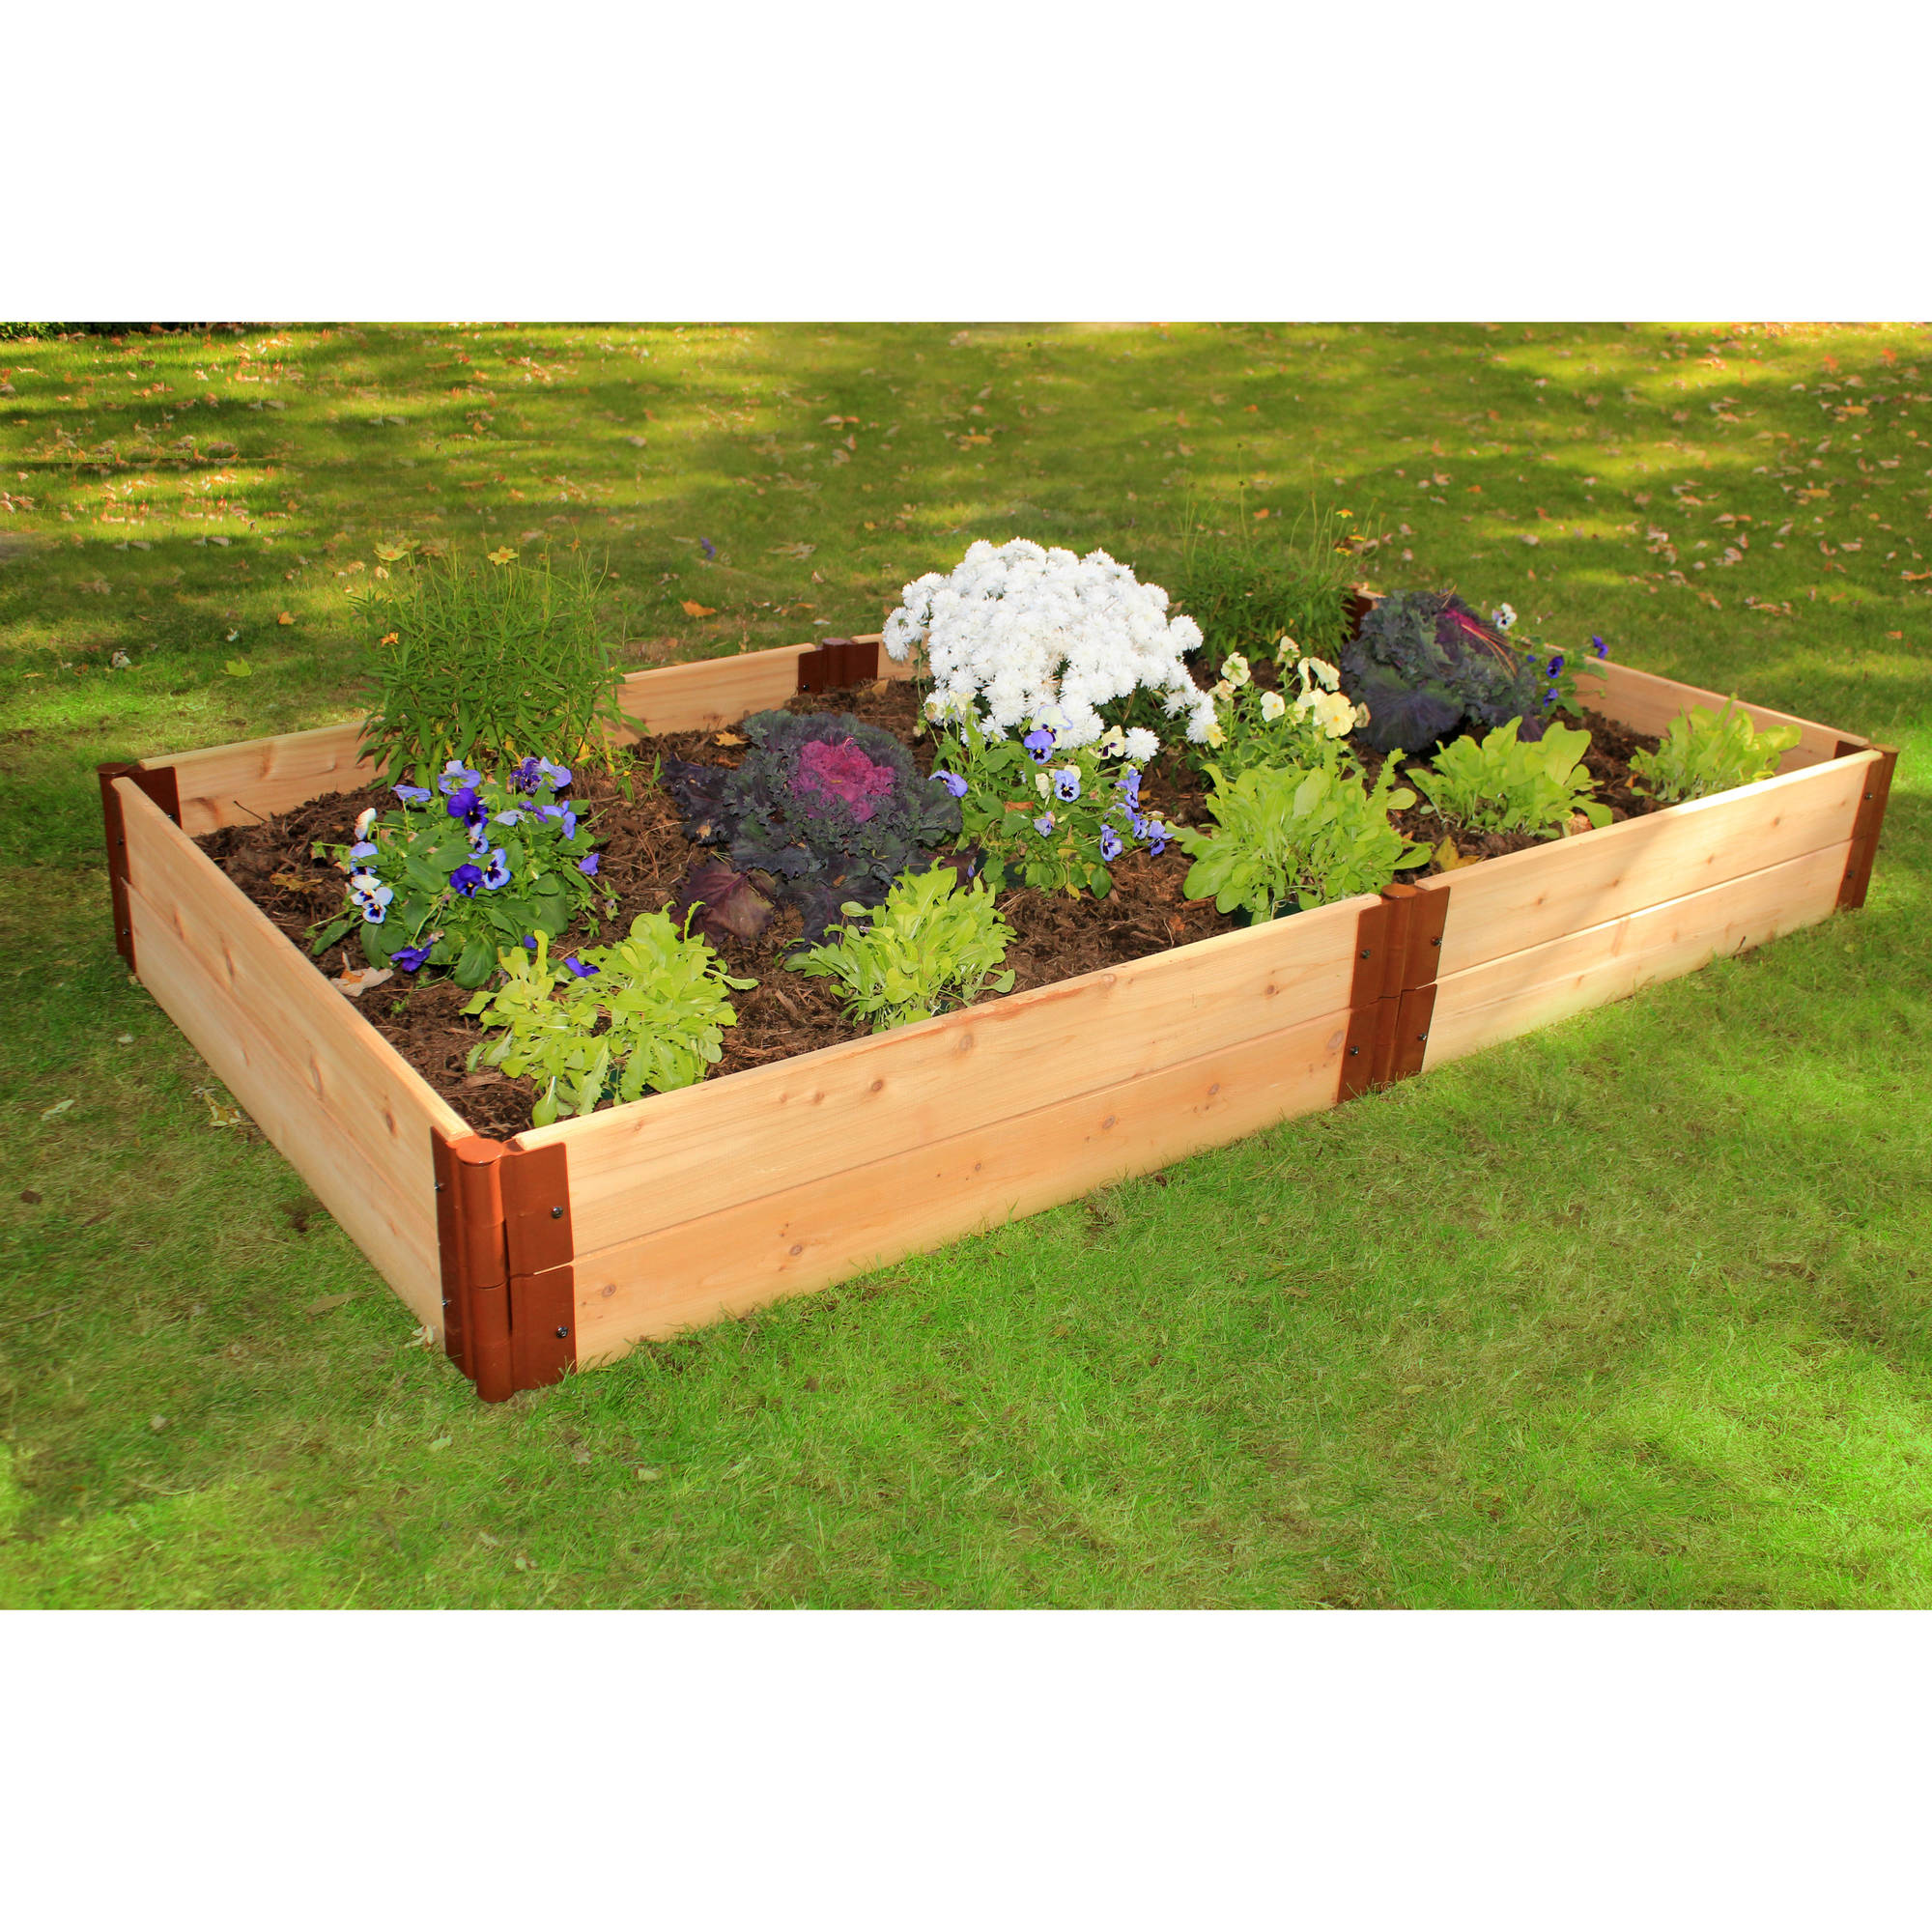 Frame It All 1-inch Series Cedar Raised Garden Bed Kit - 4ft. x 8ft. x 12in.